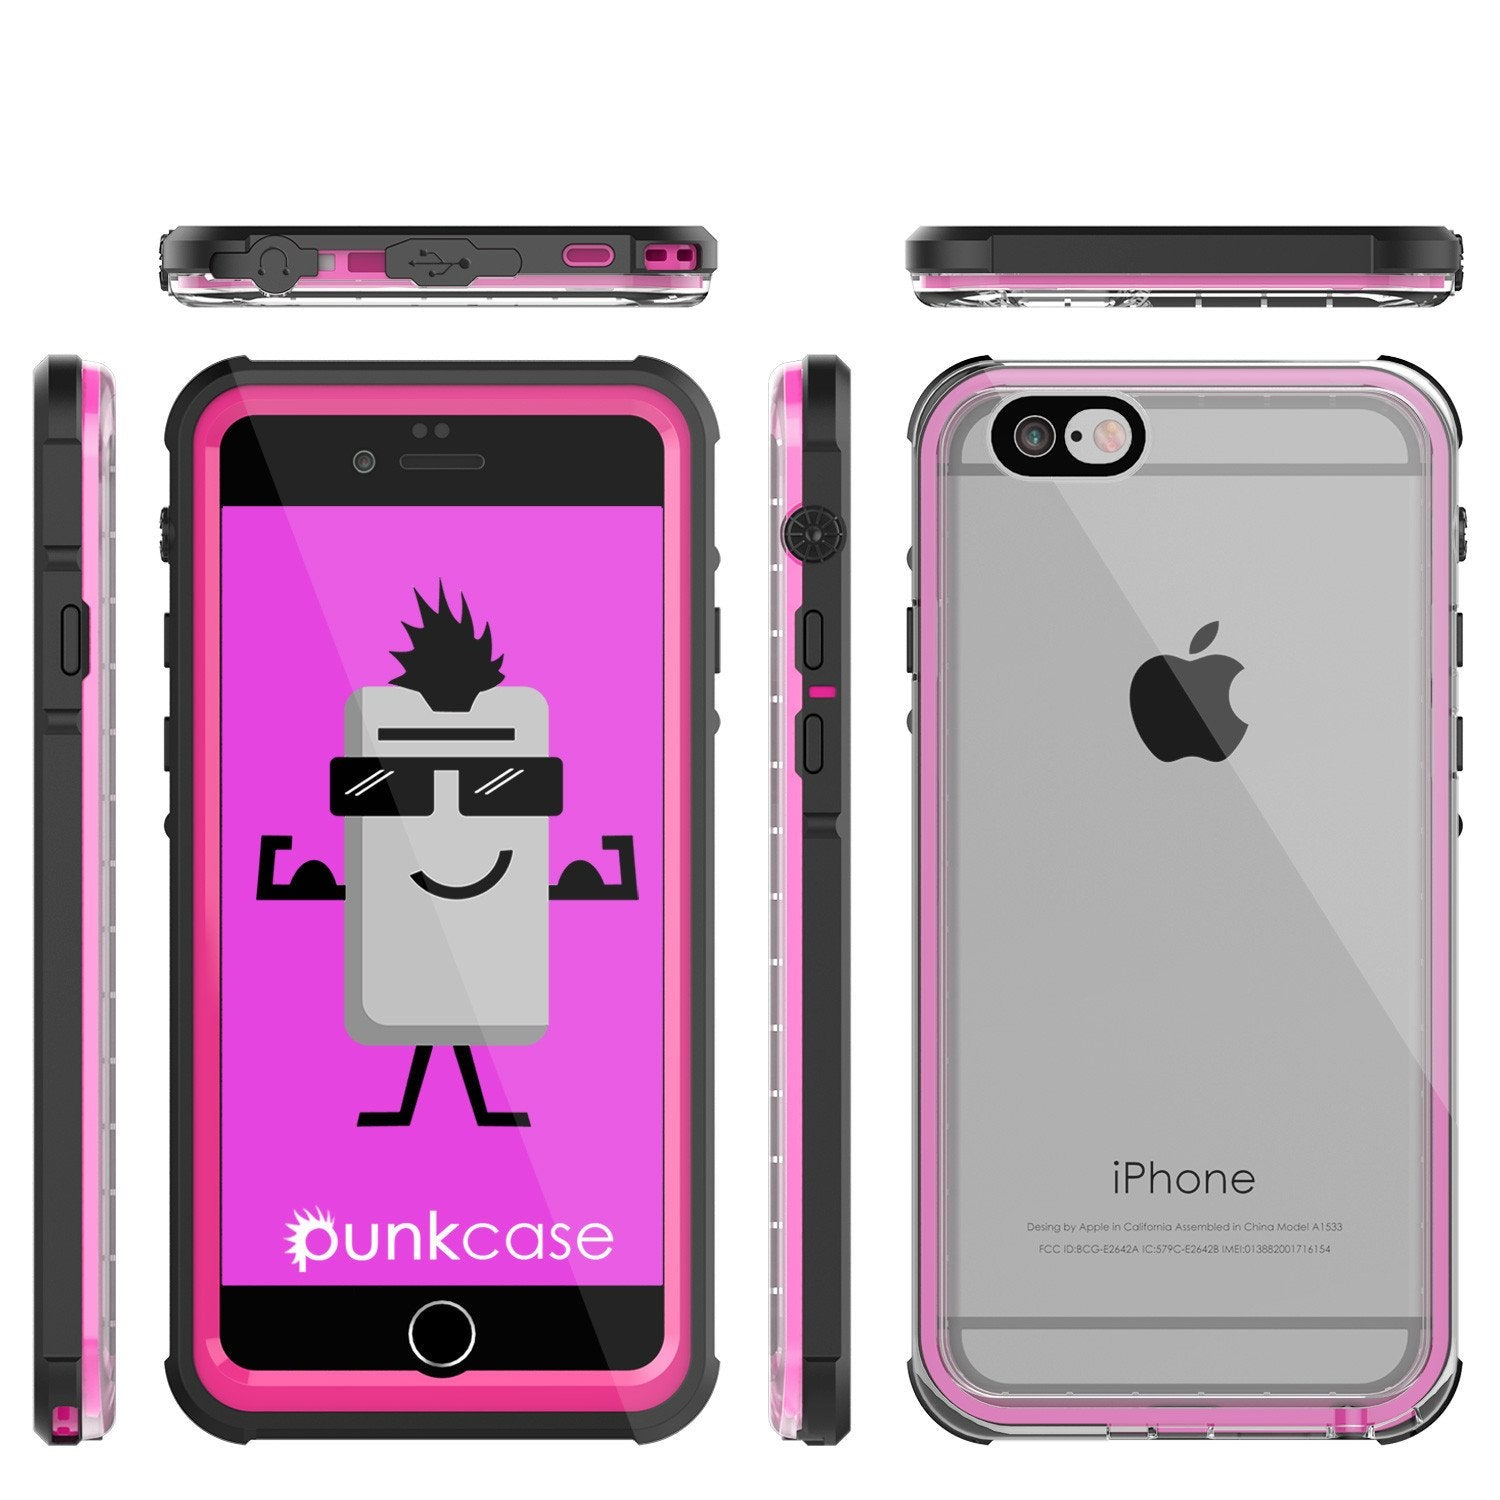 on sale 71c95 65805 iPhone 6+/6S+ Plus Waterproof Case, PUNKcase CRYSTAL Pink W/ Attached  Screen Protector   Warranty